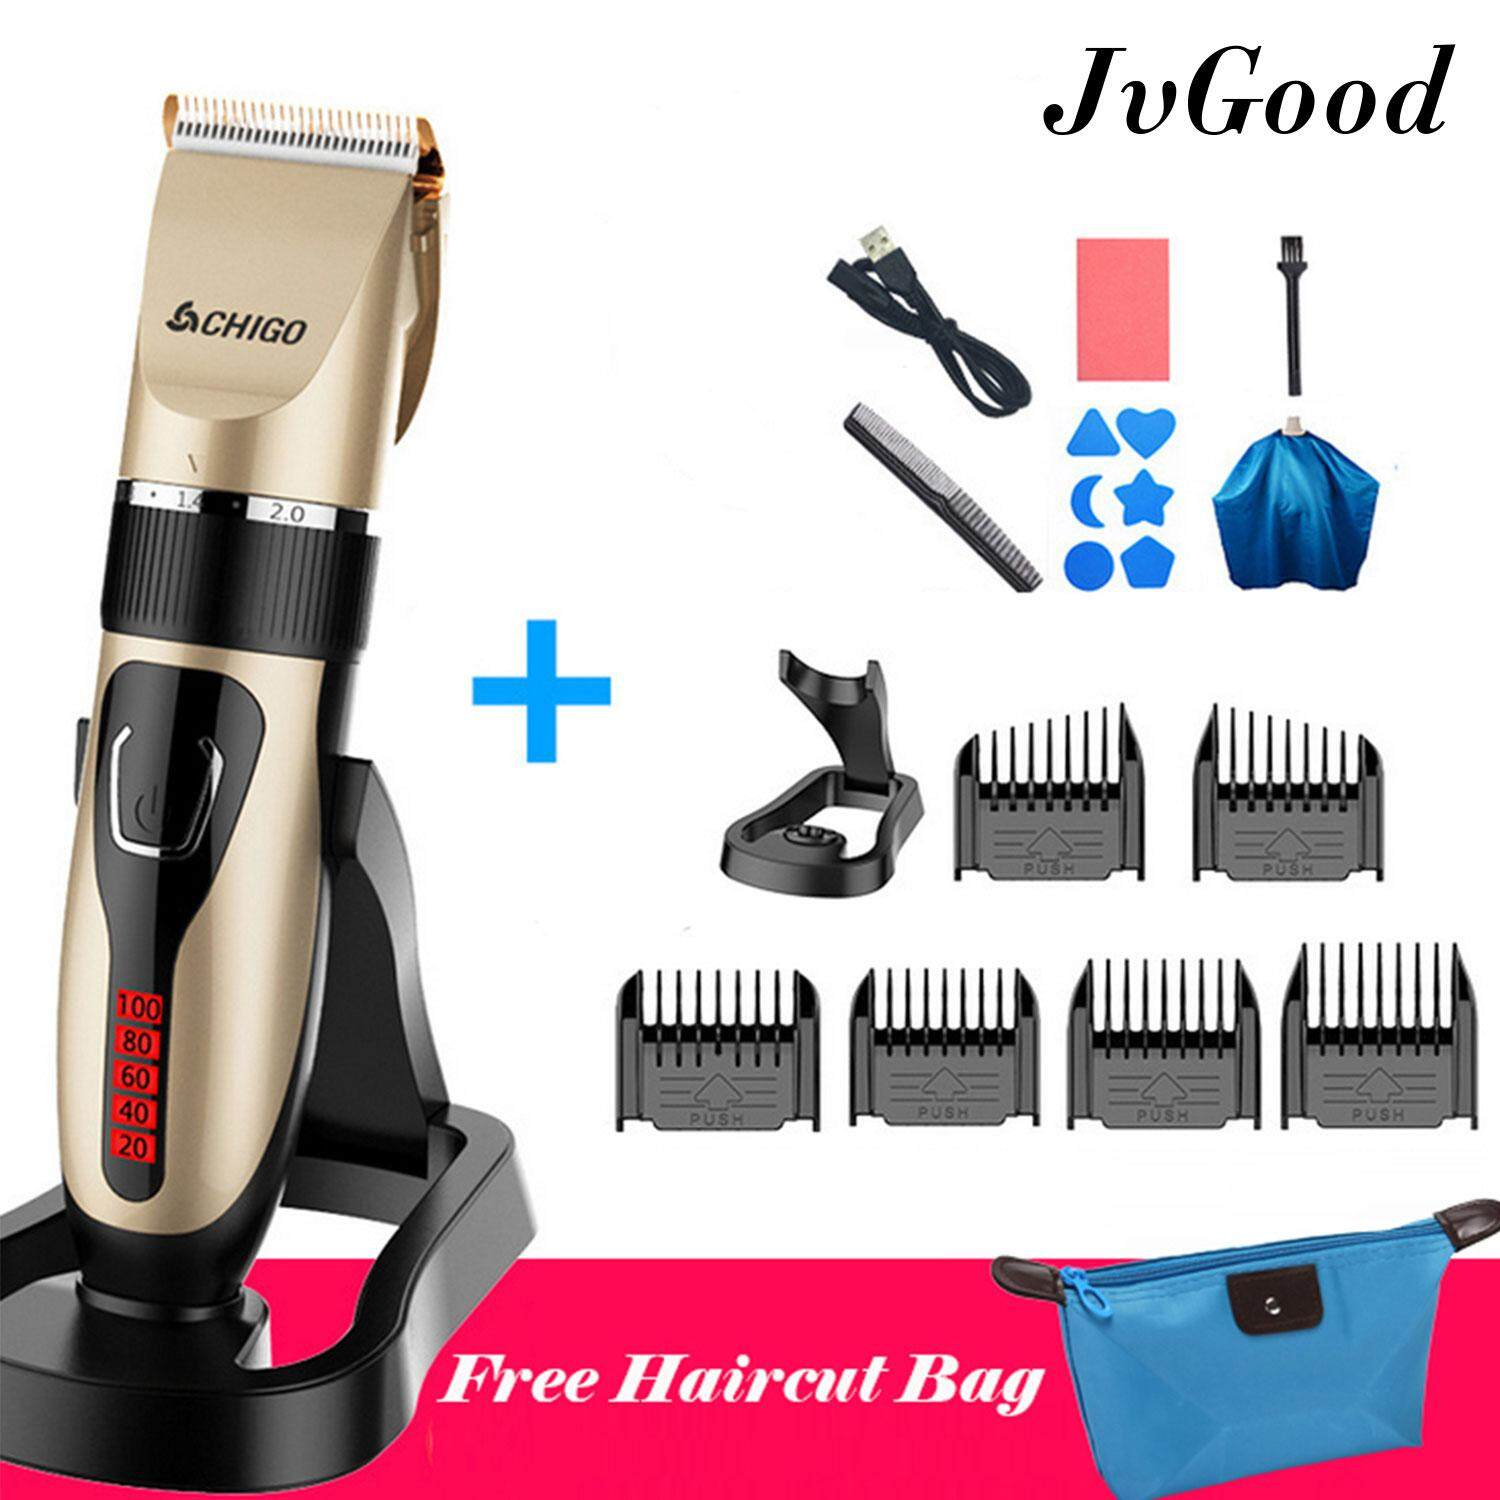 JvGood Professional Rechargeable Electric Hair Clipper Beard Trimmer Cutter  For Adult Children with Hairdresser Tools Set a80e3a5e5c